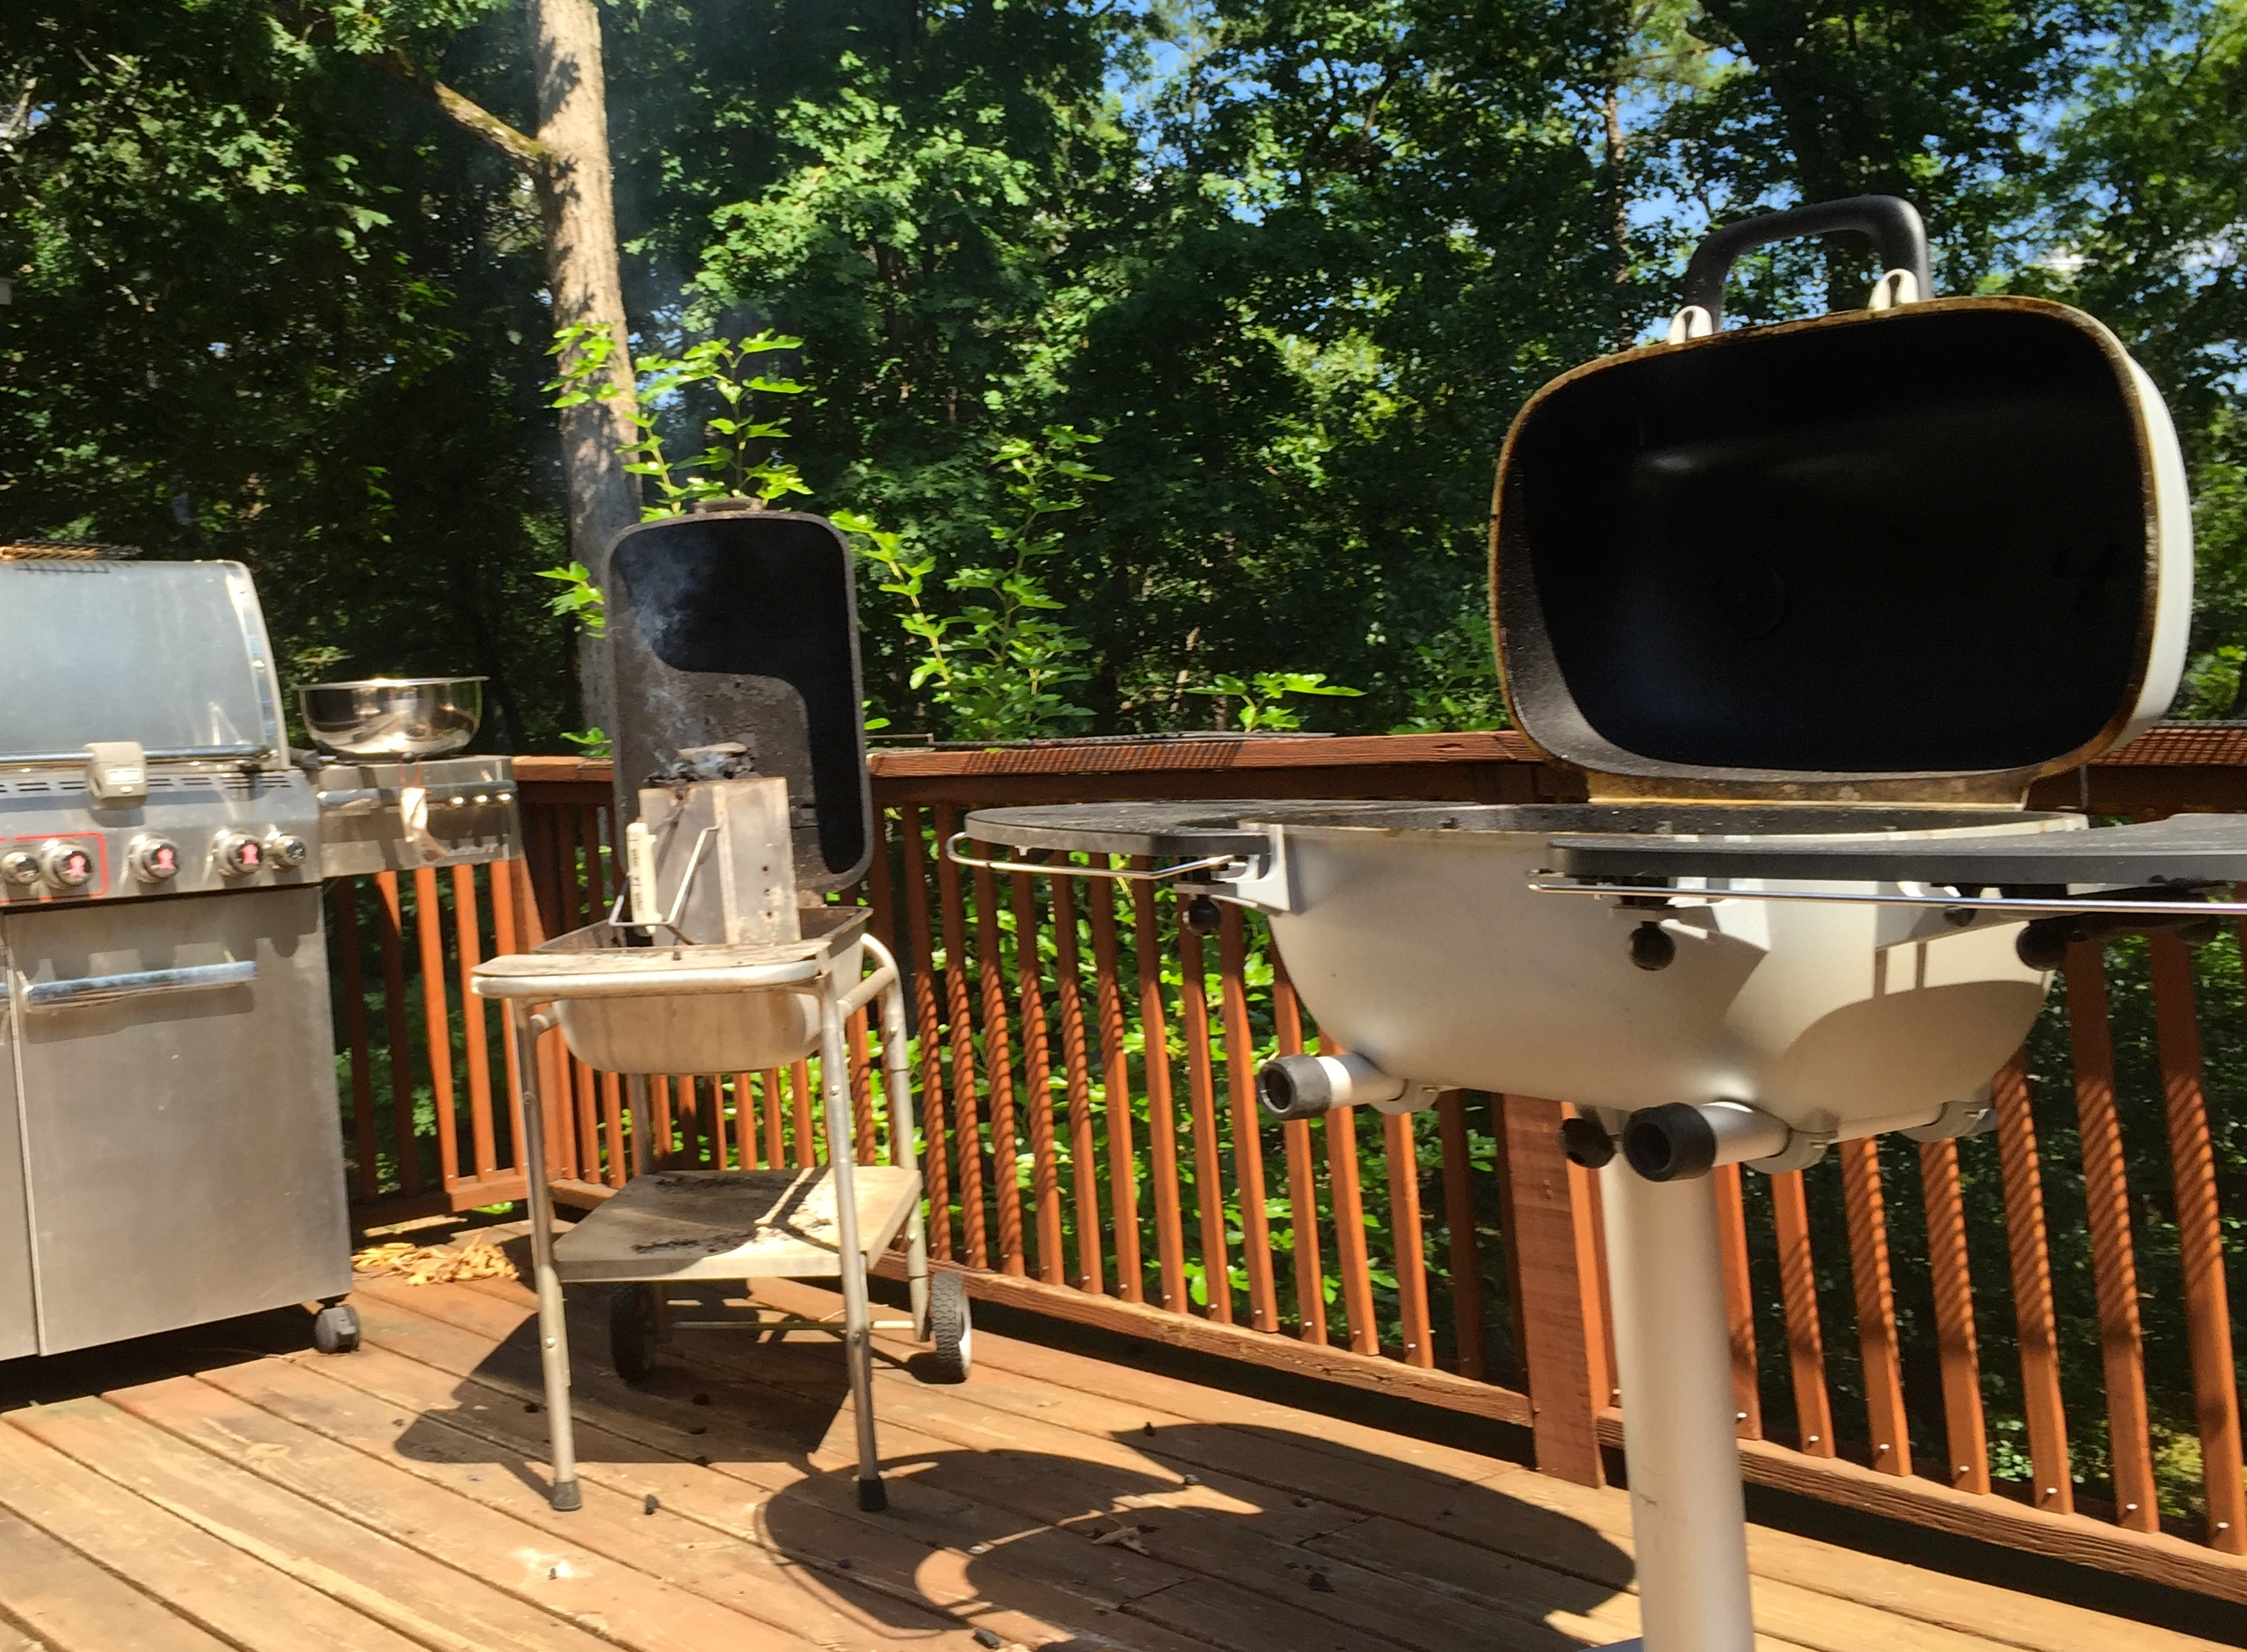 Grill Convention on Convivial Boar's deck